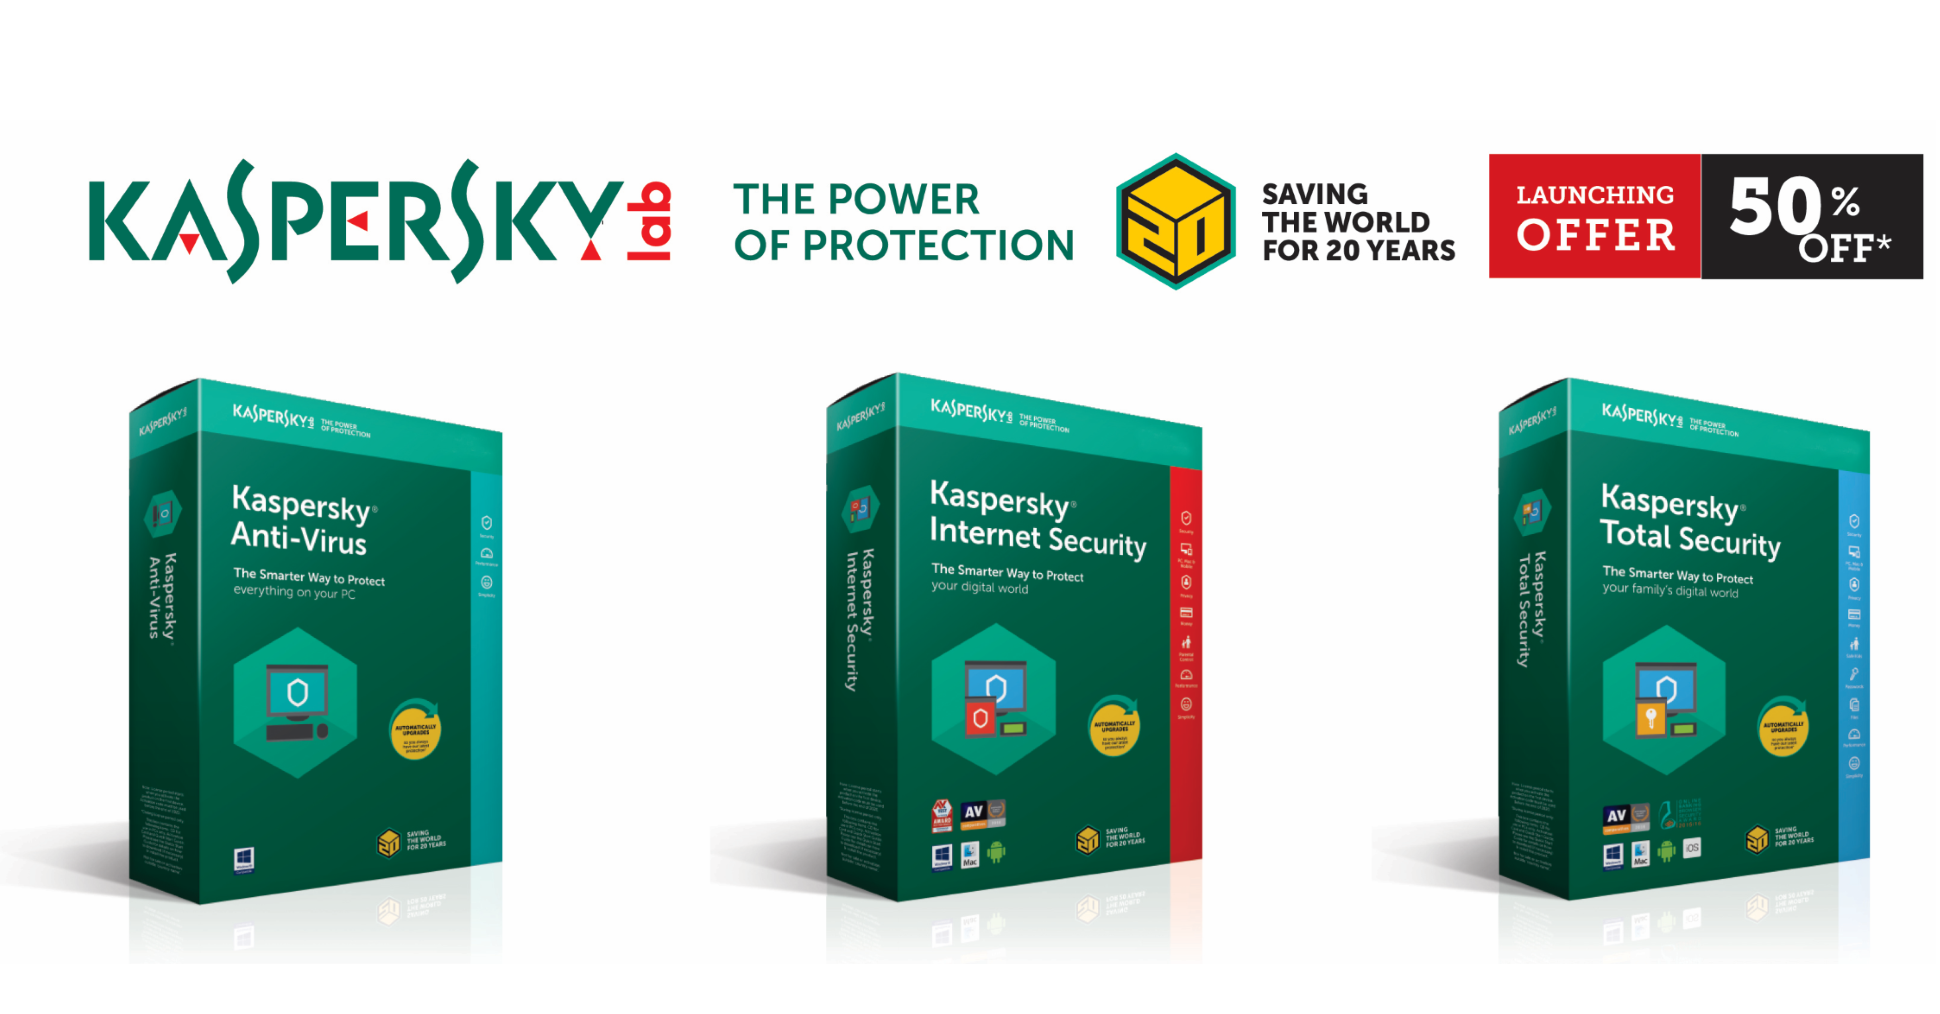 to buy kaspersky antivirus